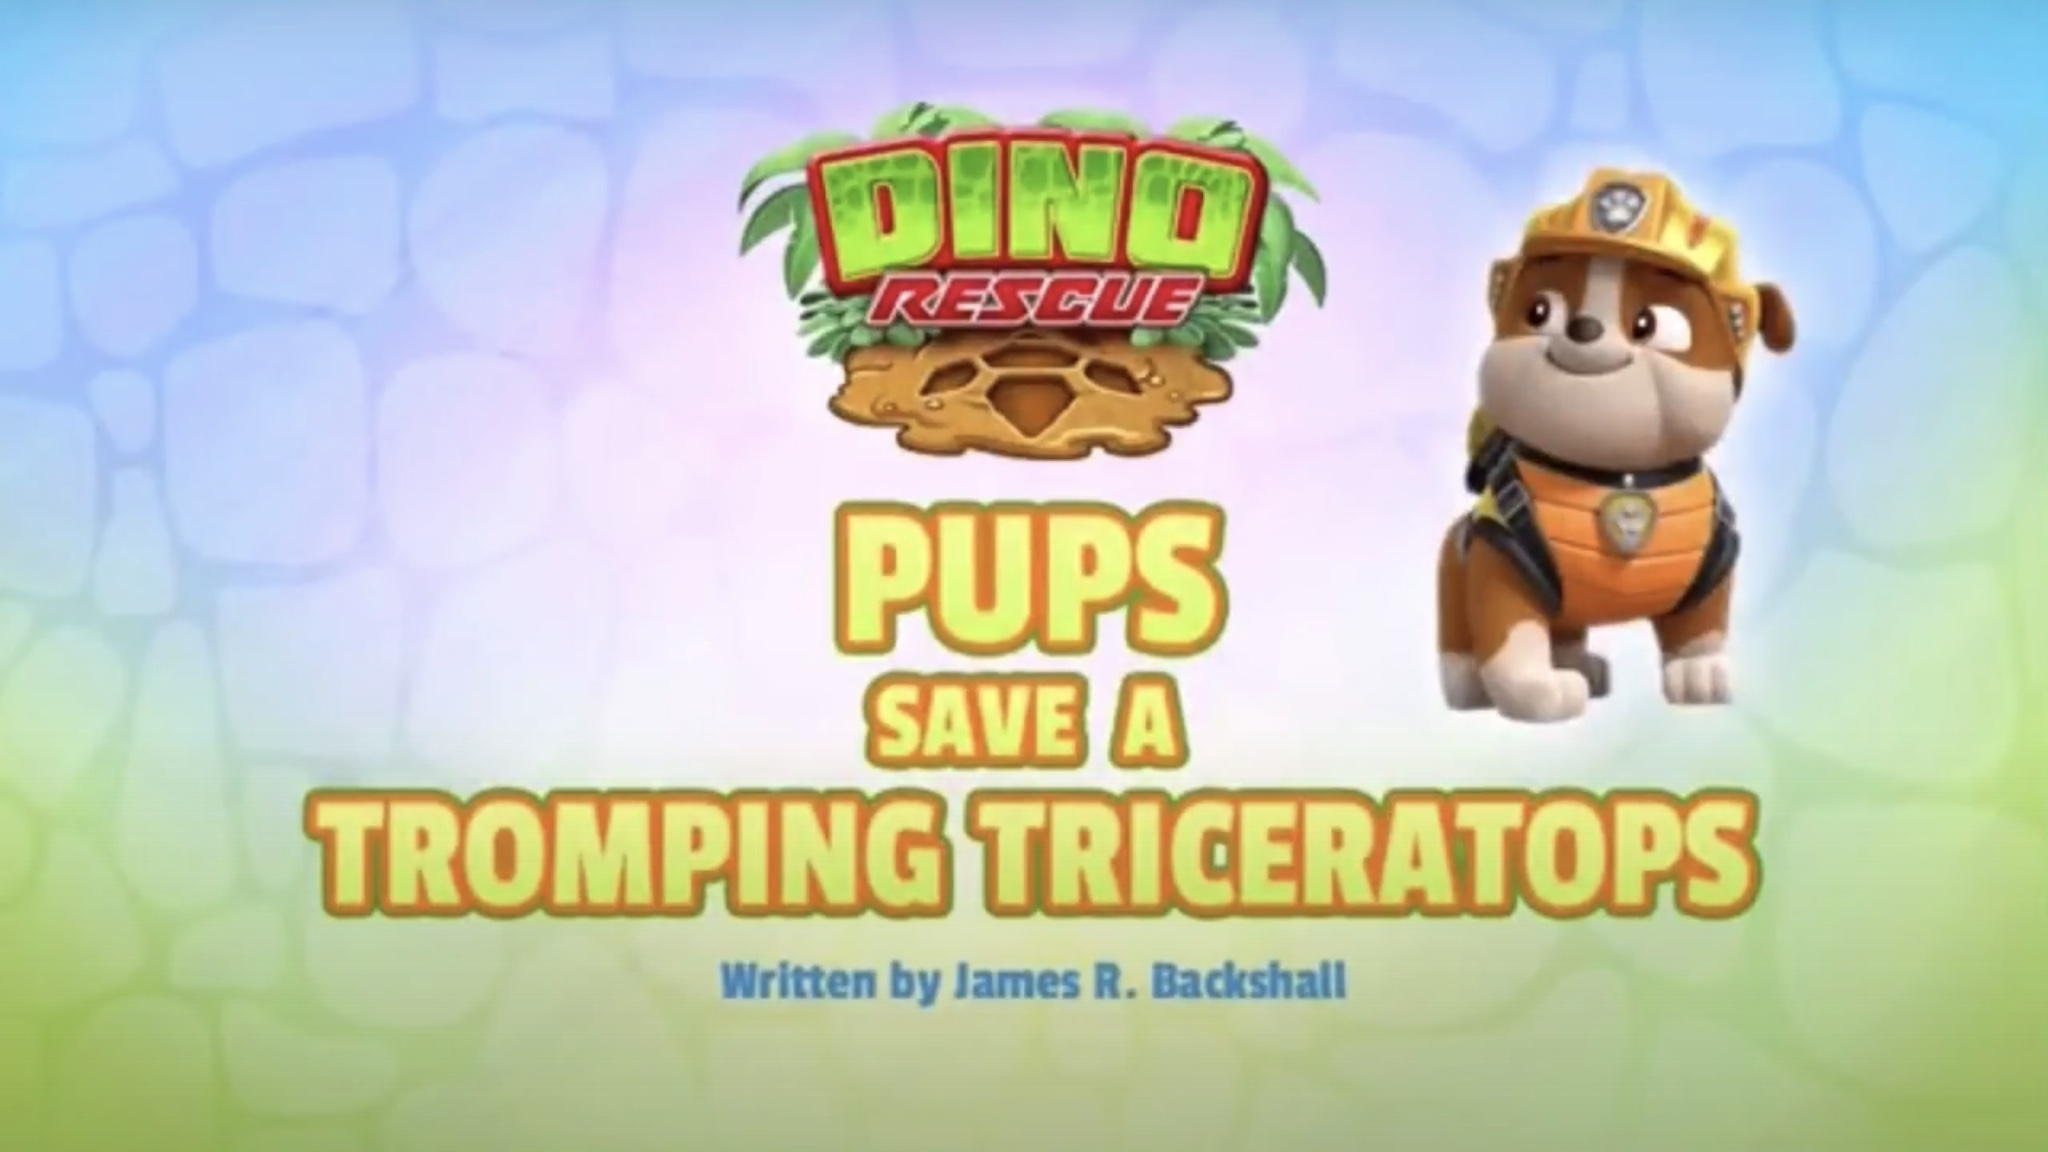 PAW Patrol Original 5s: Dino Rescue: Pups Save a Tromping Triceratops